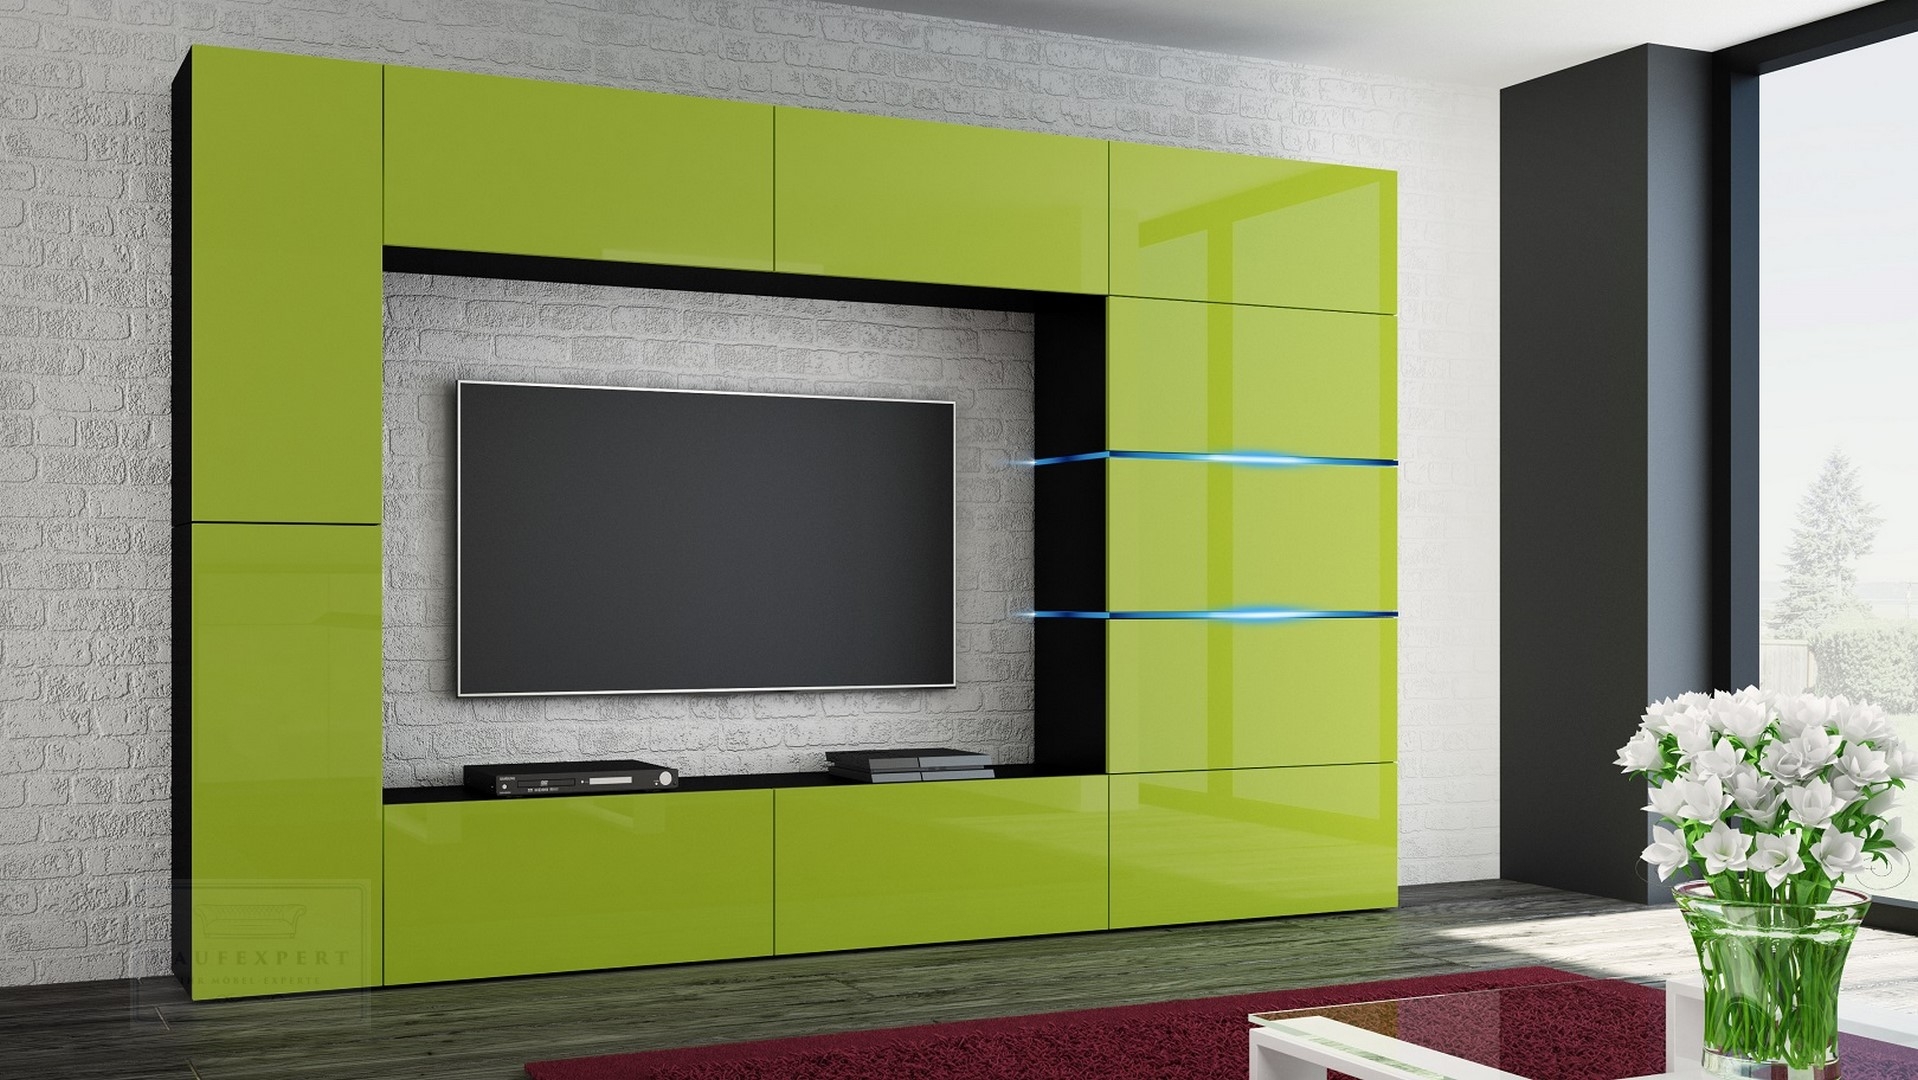 kaufexpert wohnwand shadow lime hochglanz schwarz 285 cm. Black Bedroom Furniture Sets. Home Design Ideas